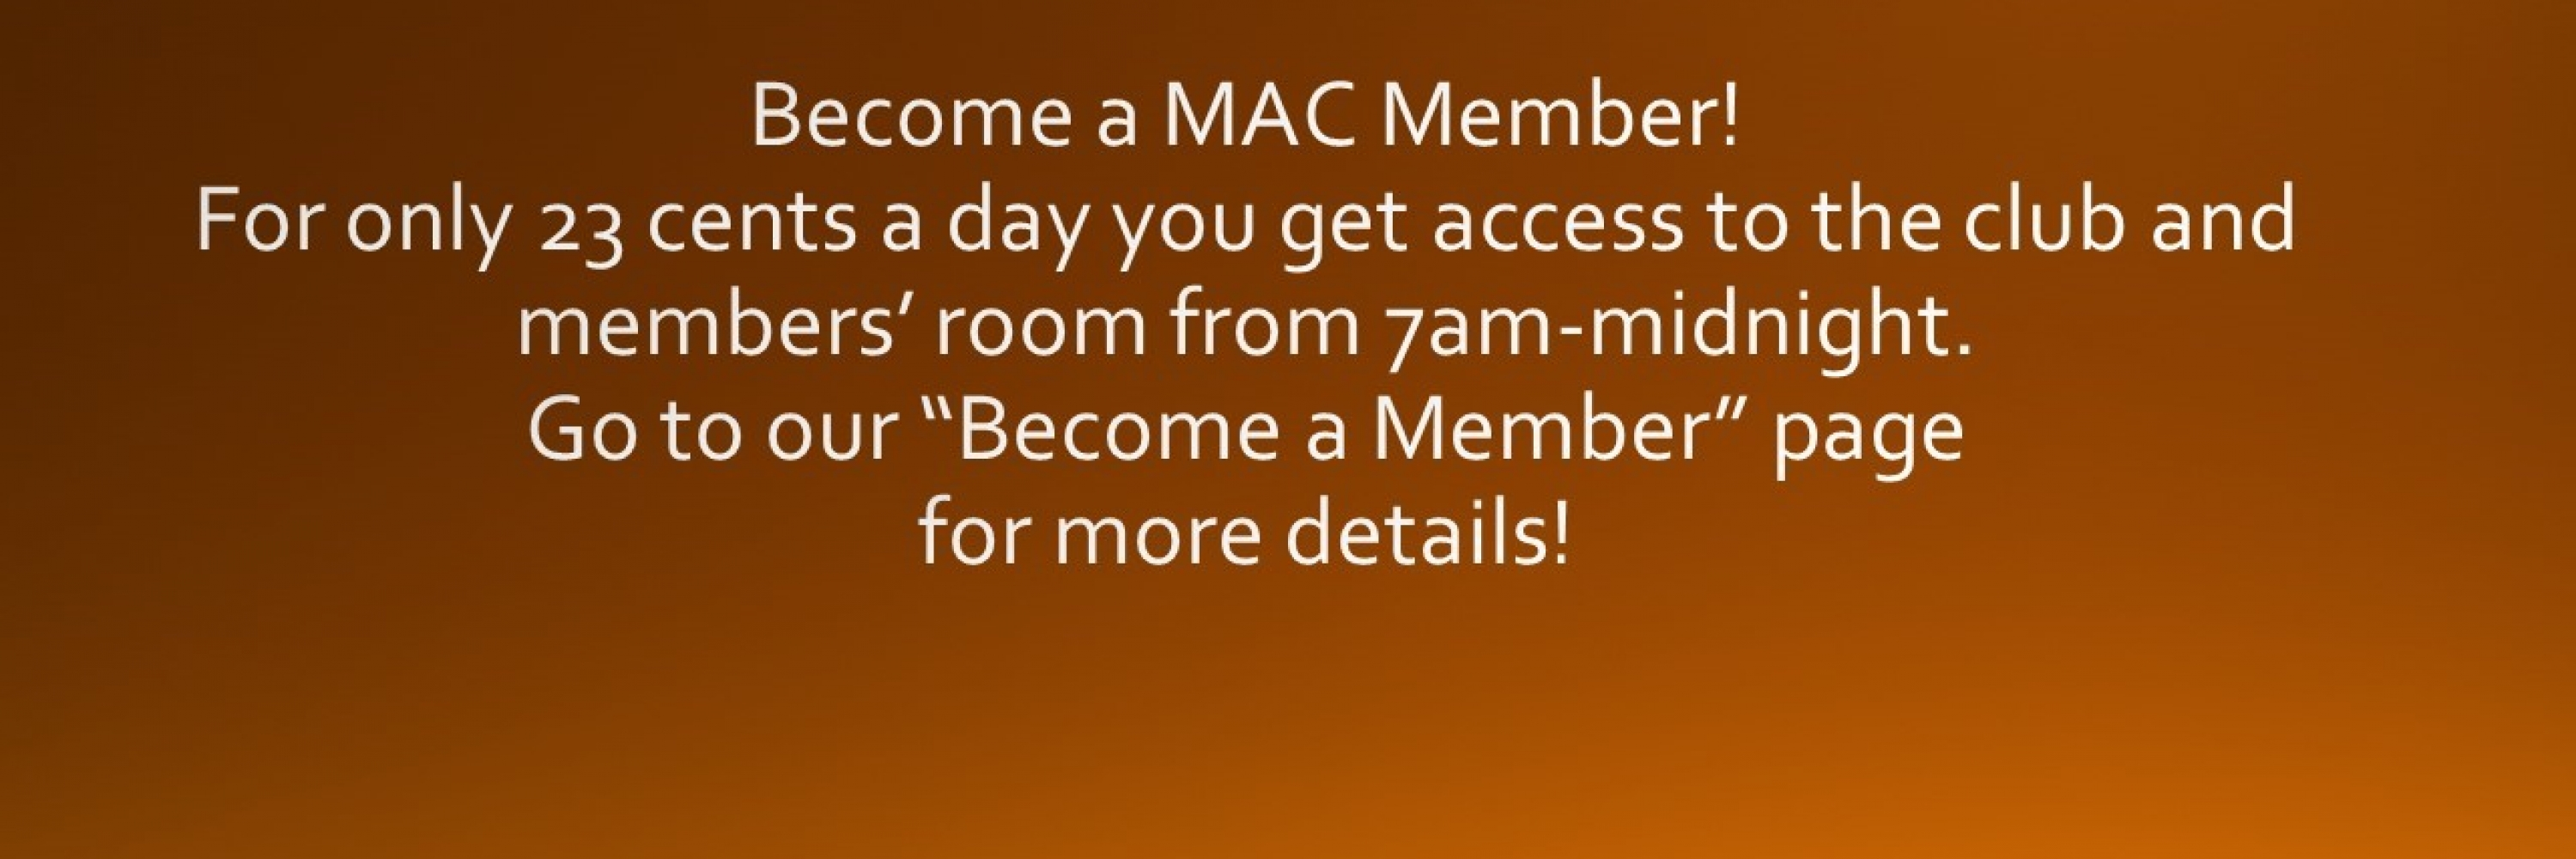 become-member